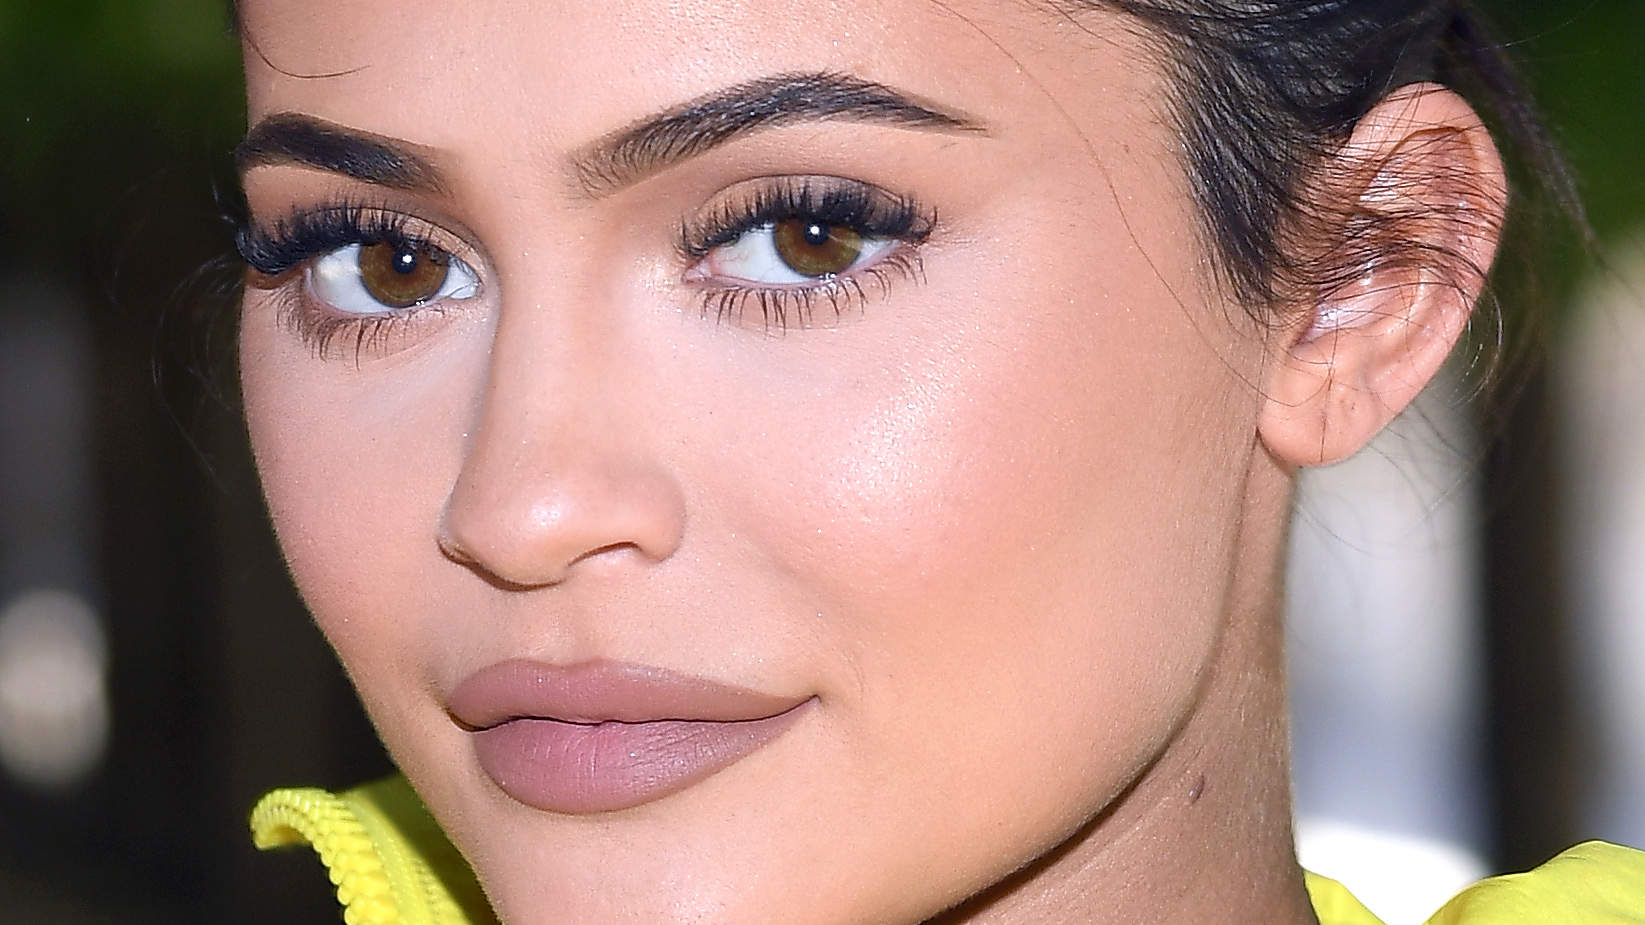 Kylie Jenner Looks Totally Different After Having Her Lip Filler Removed